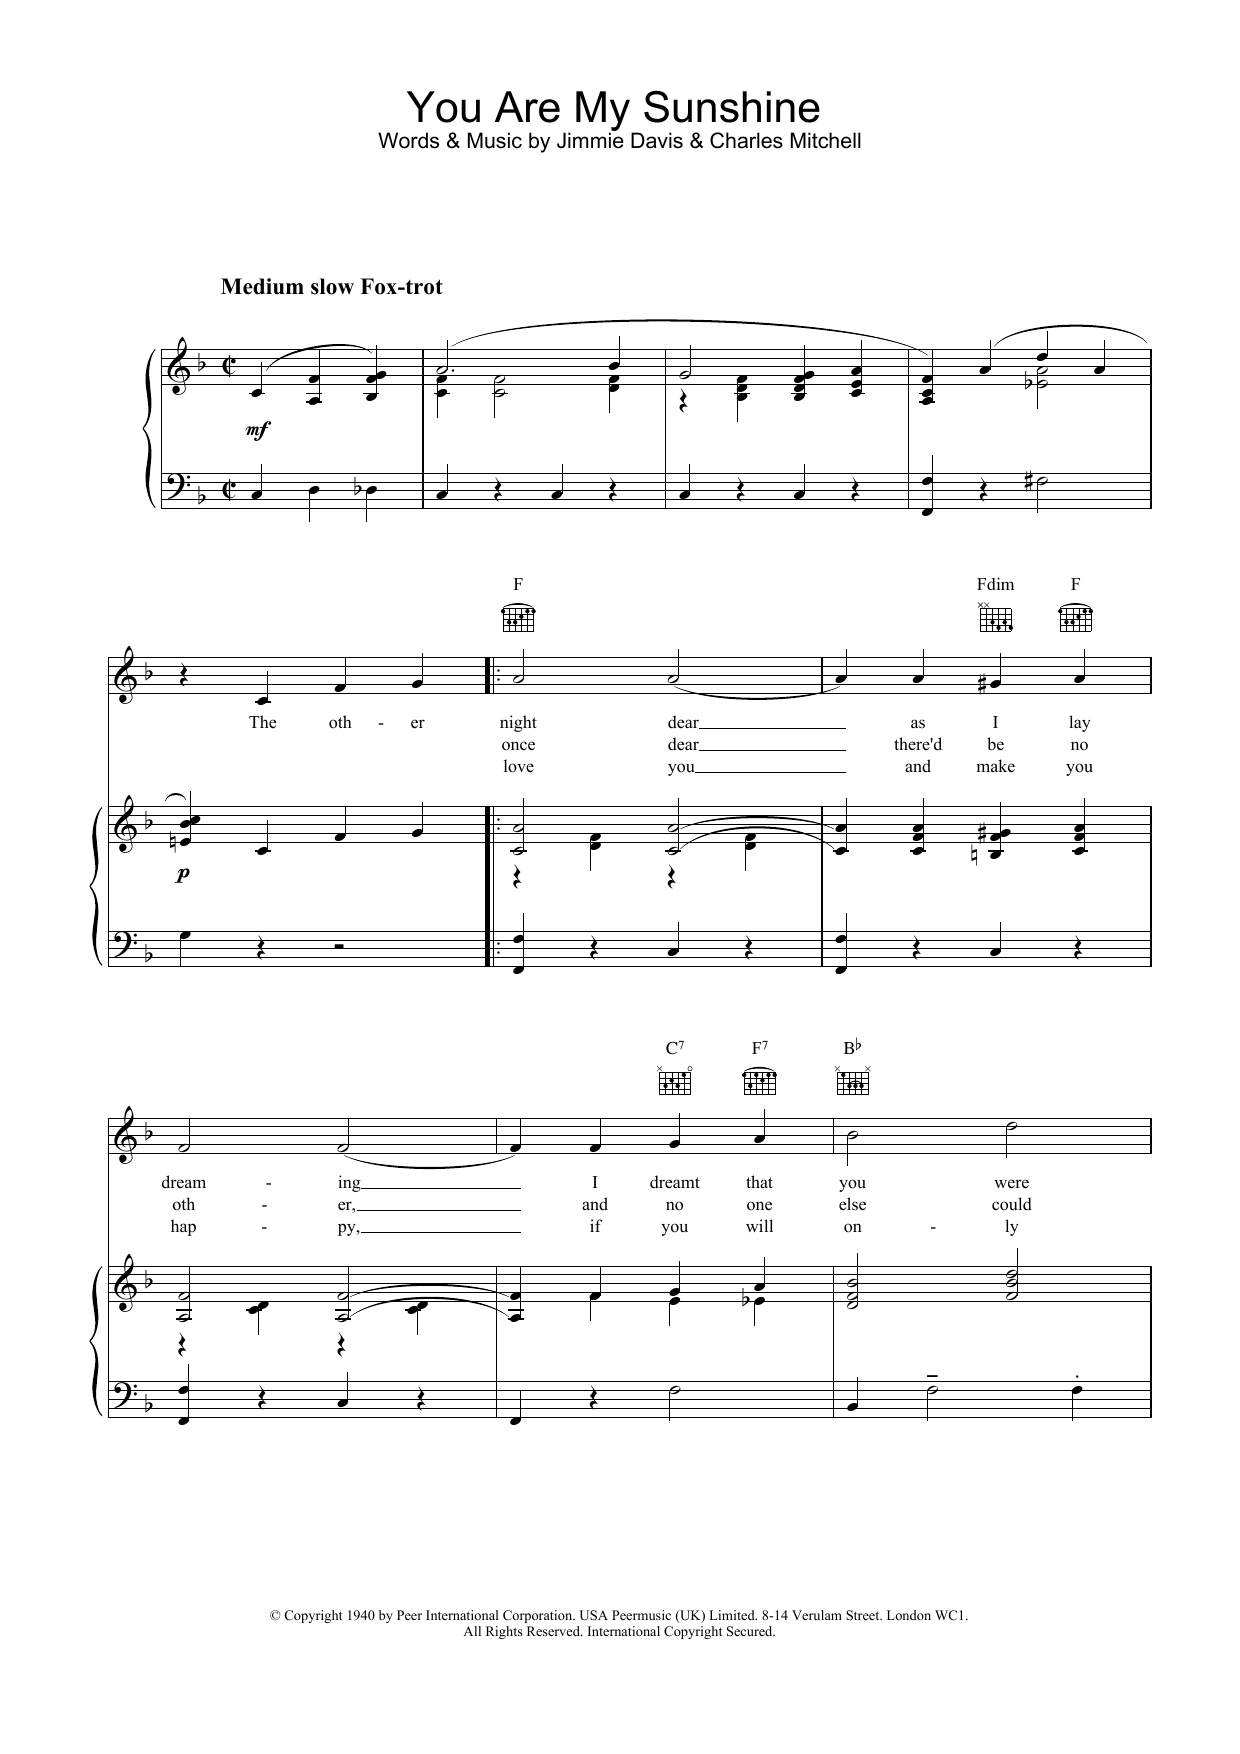 You Are My Sunshine sheet music for voice, piano or guitar by Charles Mitchell